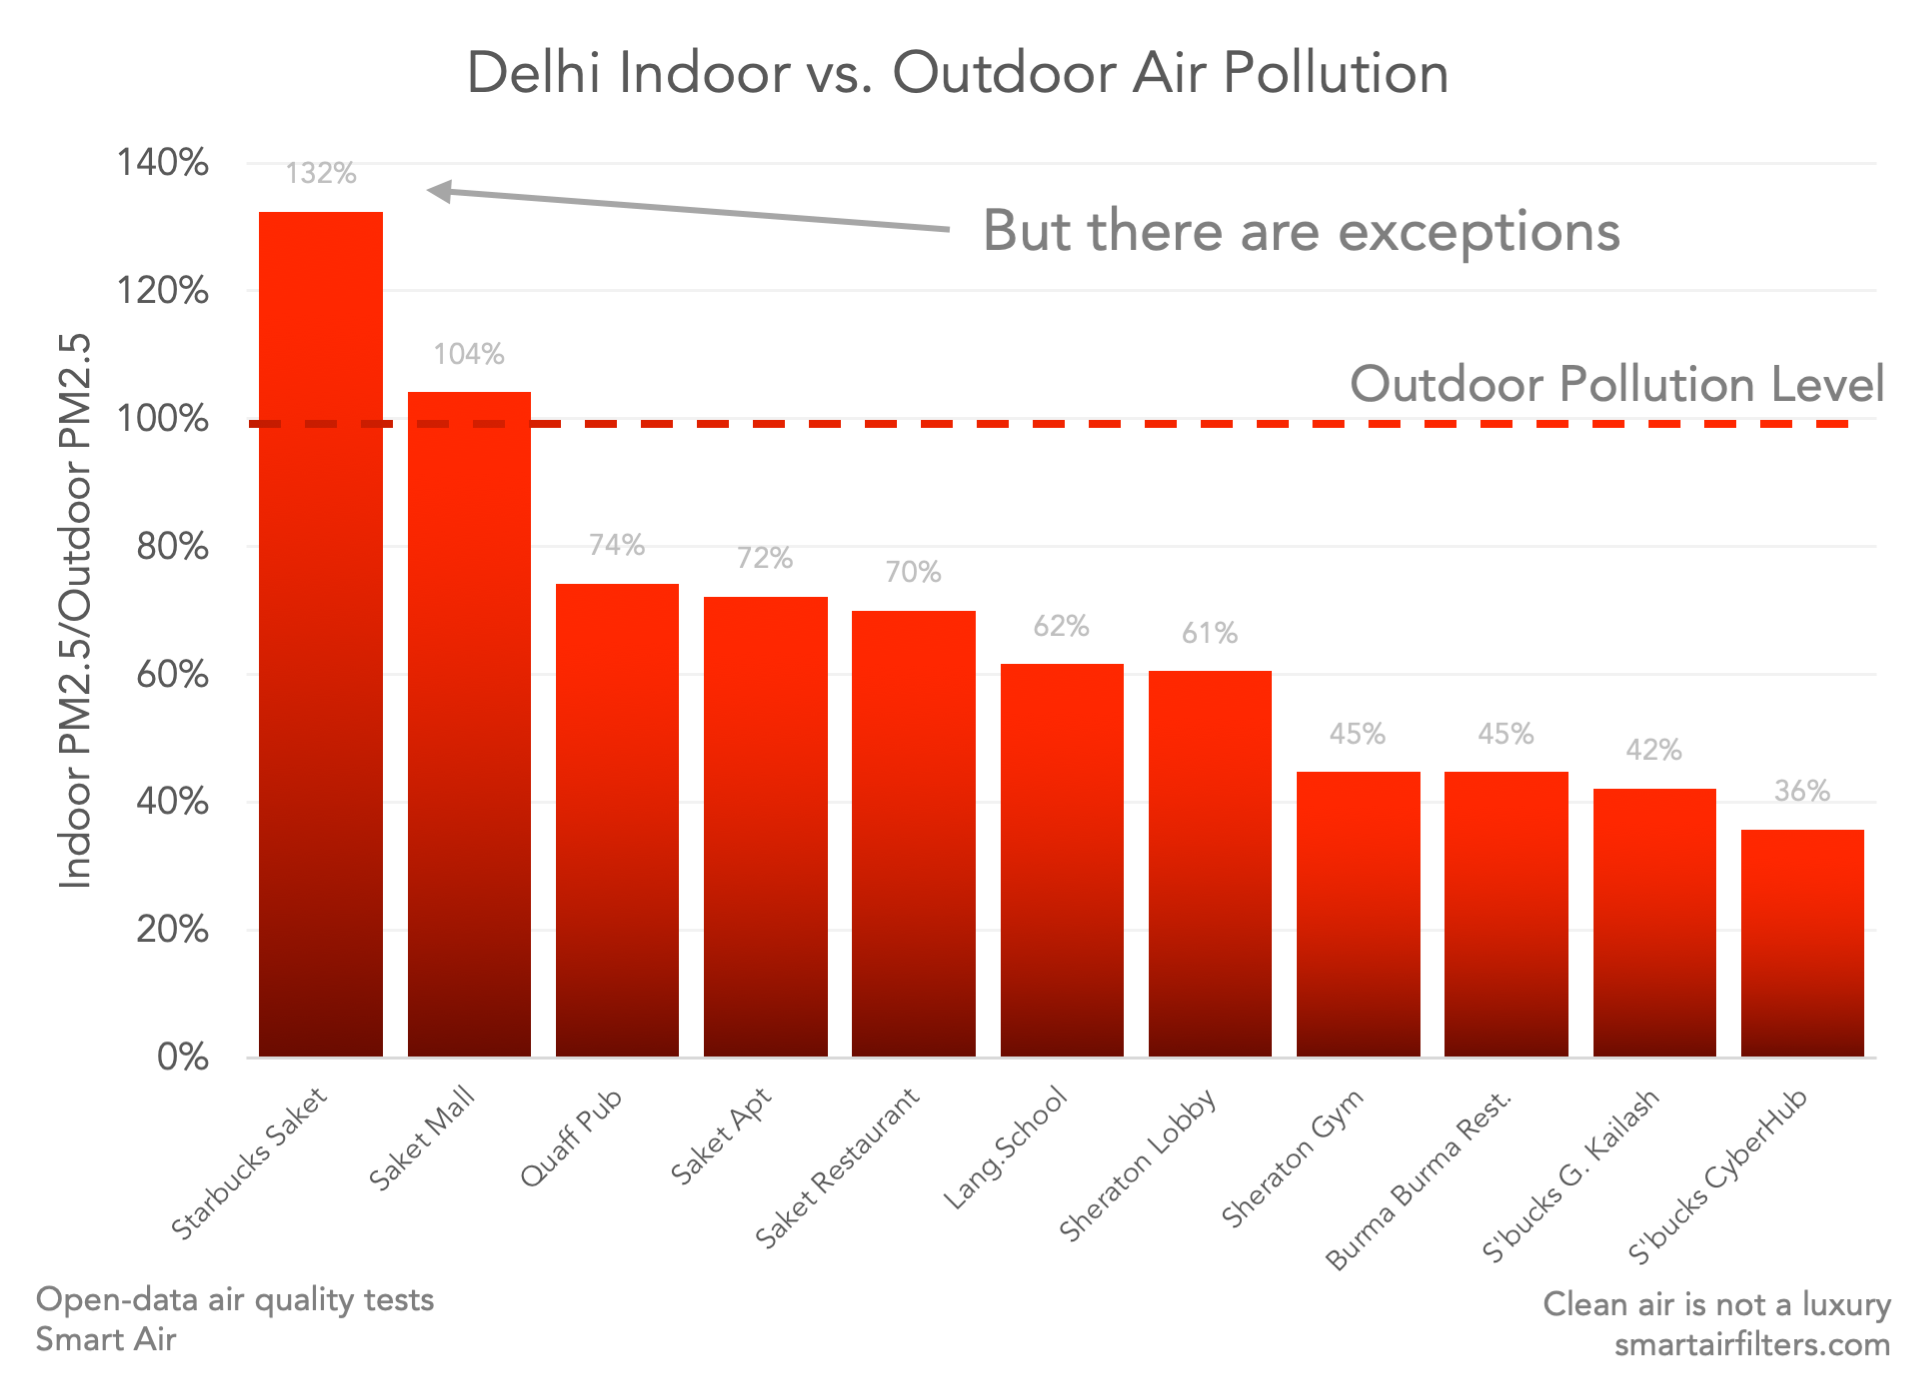 Delhi indoor air vs. outdoor air pollution: exceptions